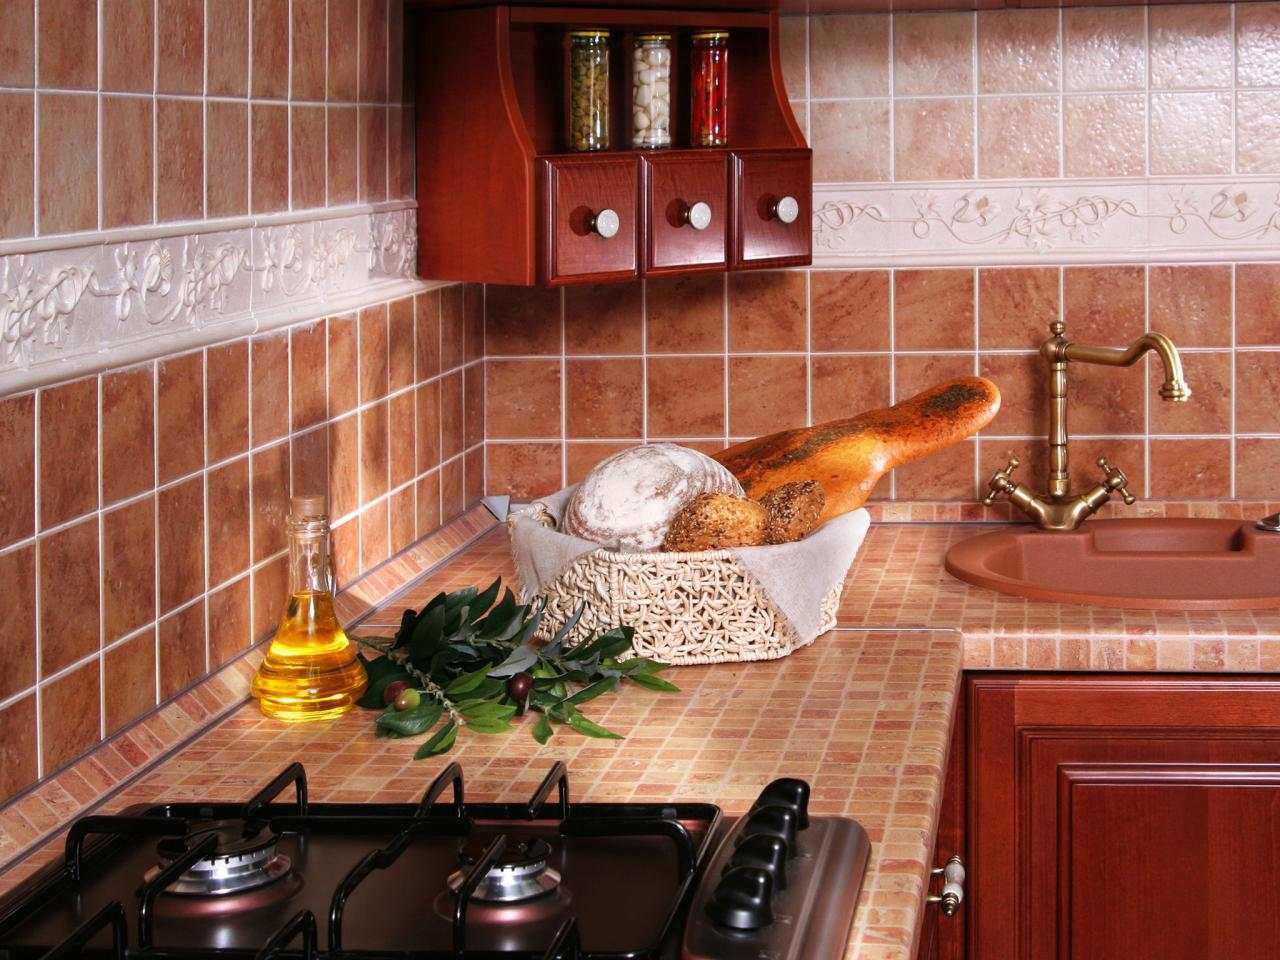 Kitchen Counter Tile Tiled Kitchen Countertops Hgtv